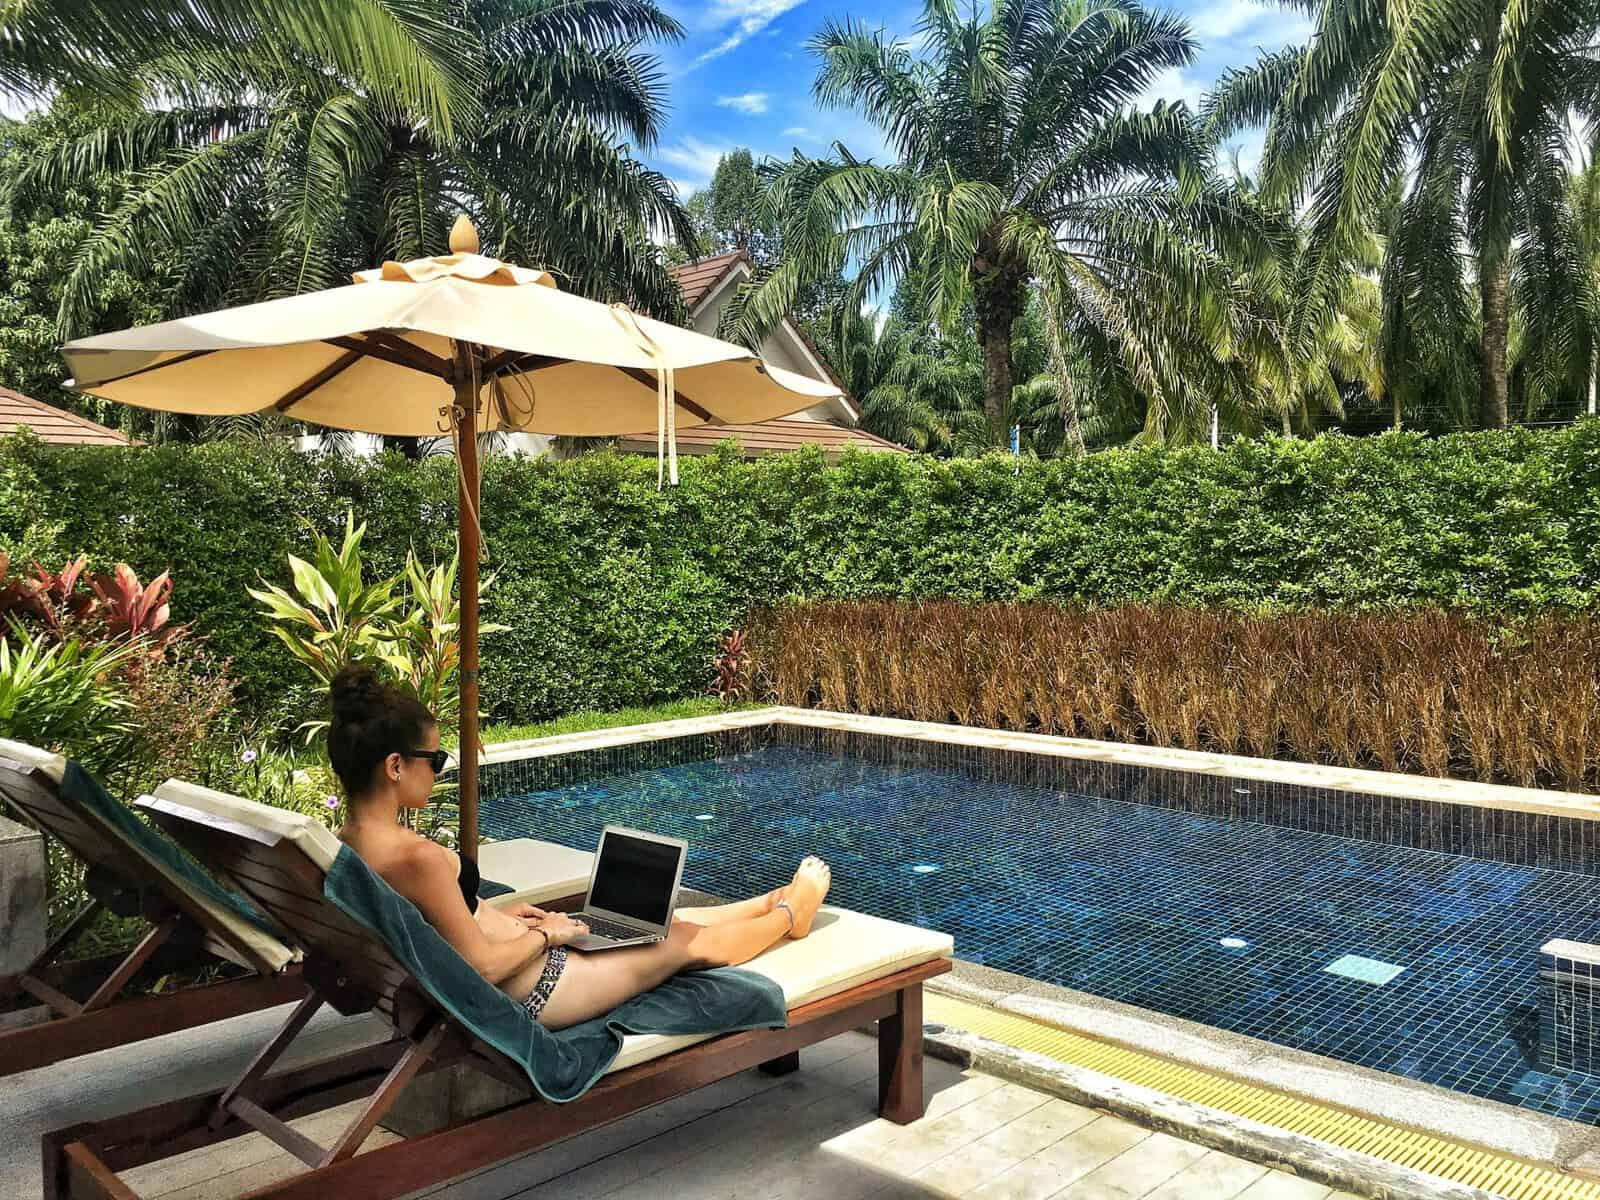 Once you master how to become a freelancer, you can work from anywhere.